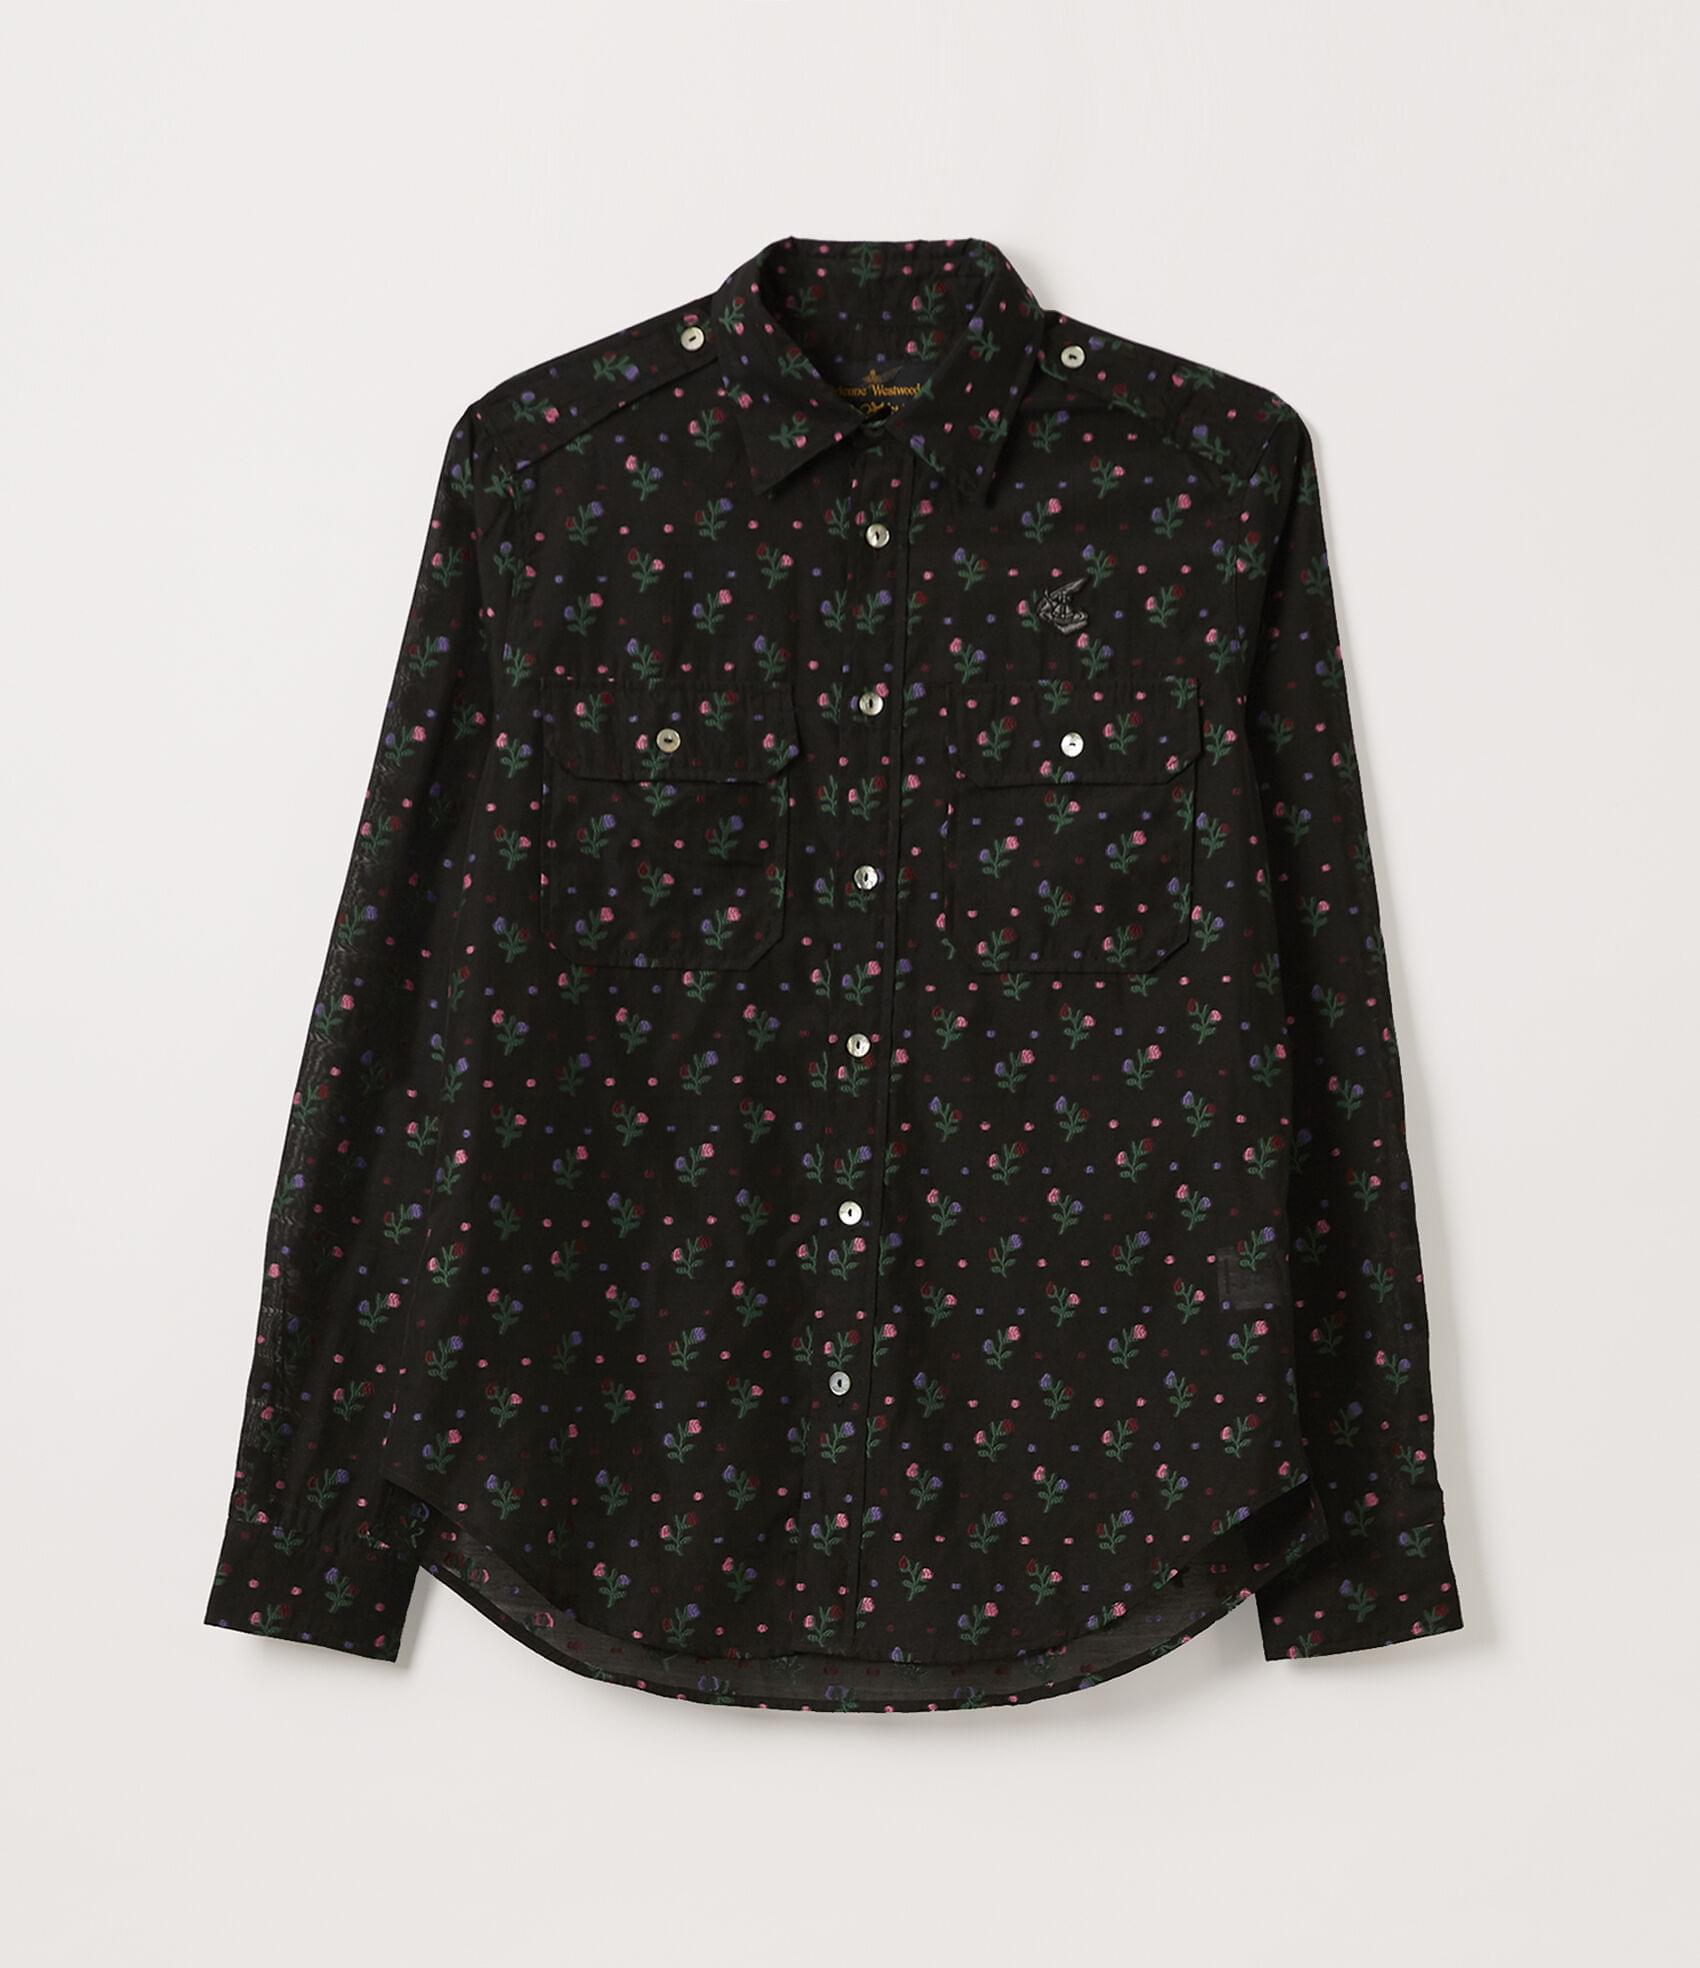 Vivienne Westwood NEW ARMY SHIRT BLACK